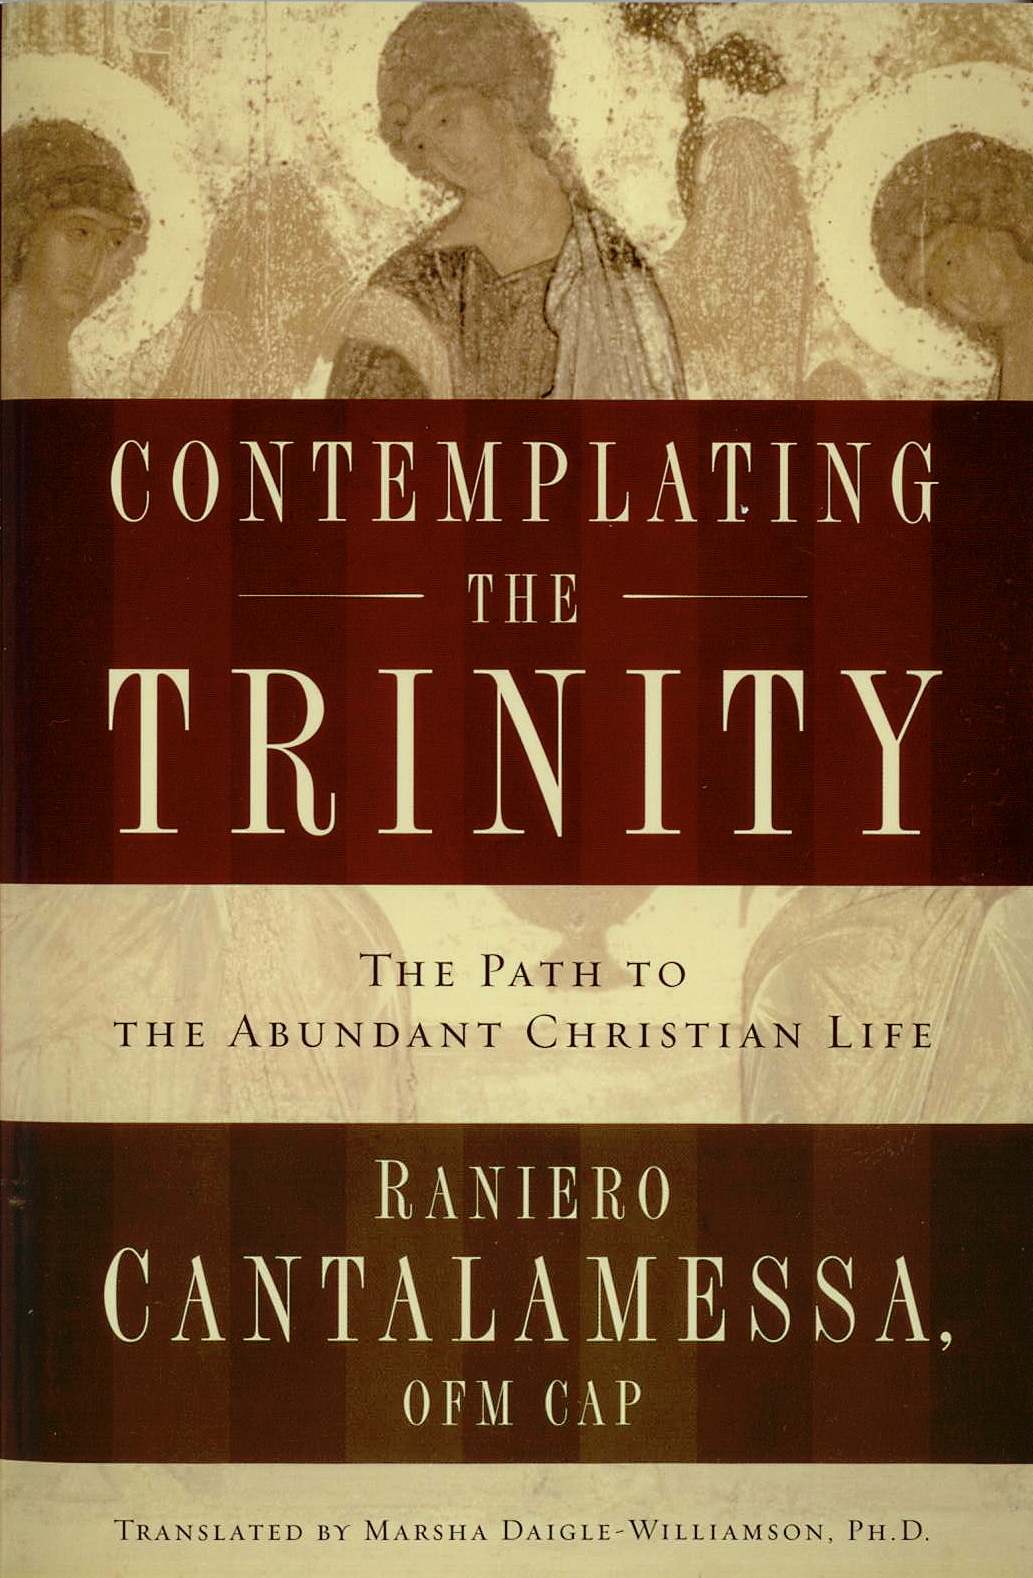 Contemplating The Trinity by Fr. Raniero Cantalamessa